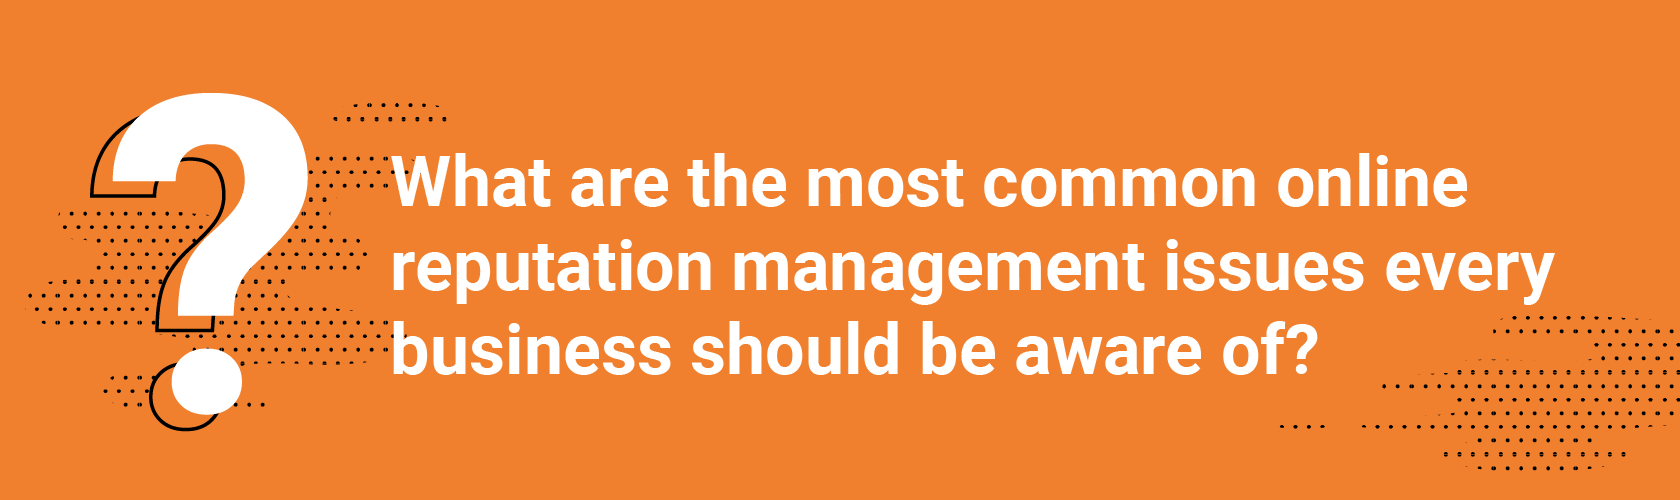 Q1 What are the most common online reputation management issues every business should be aware of?